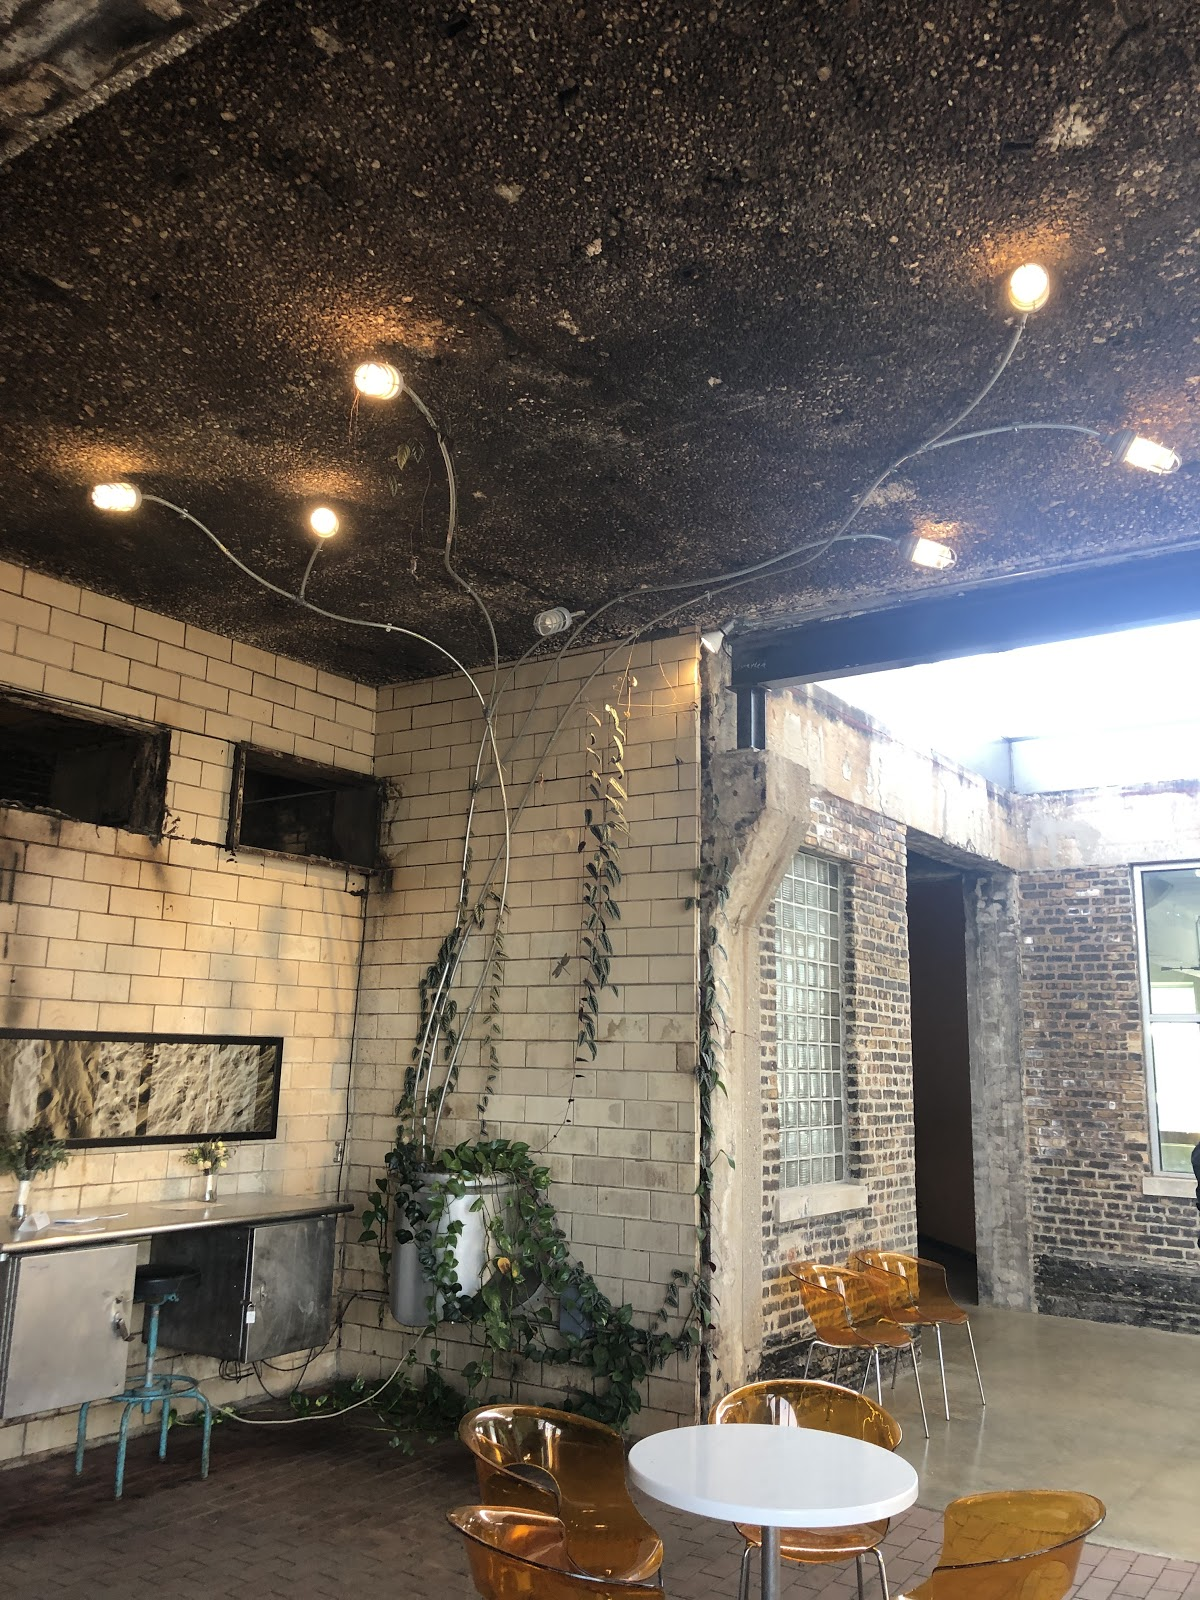 Inexpensive and beautiful design elements like this planter/light fixture made from bare conduit and old smoker chimney parts are everywhere in the building